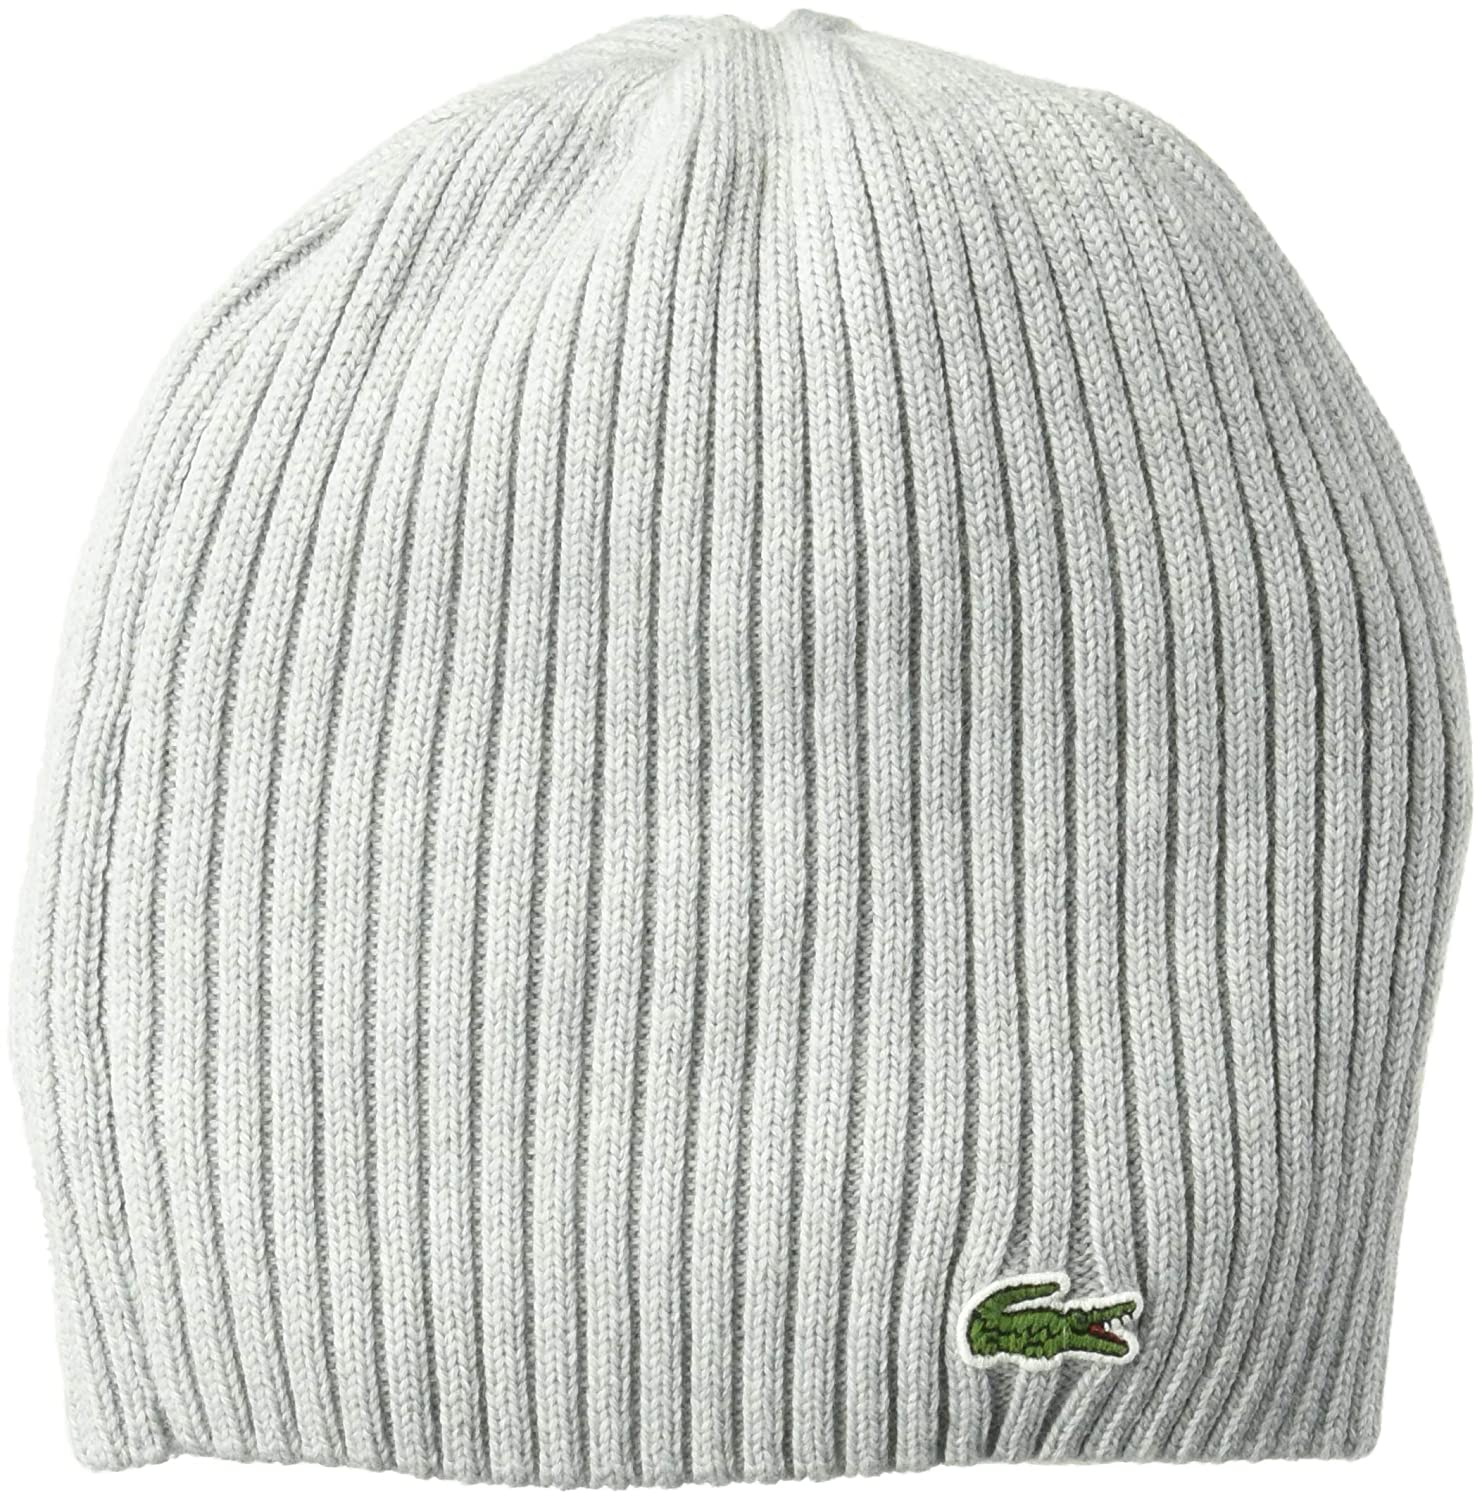 Lacoste Mens Ribbed Wool Beanie